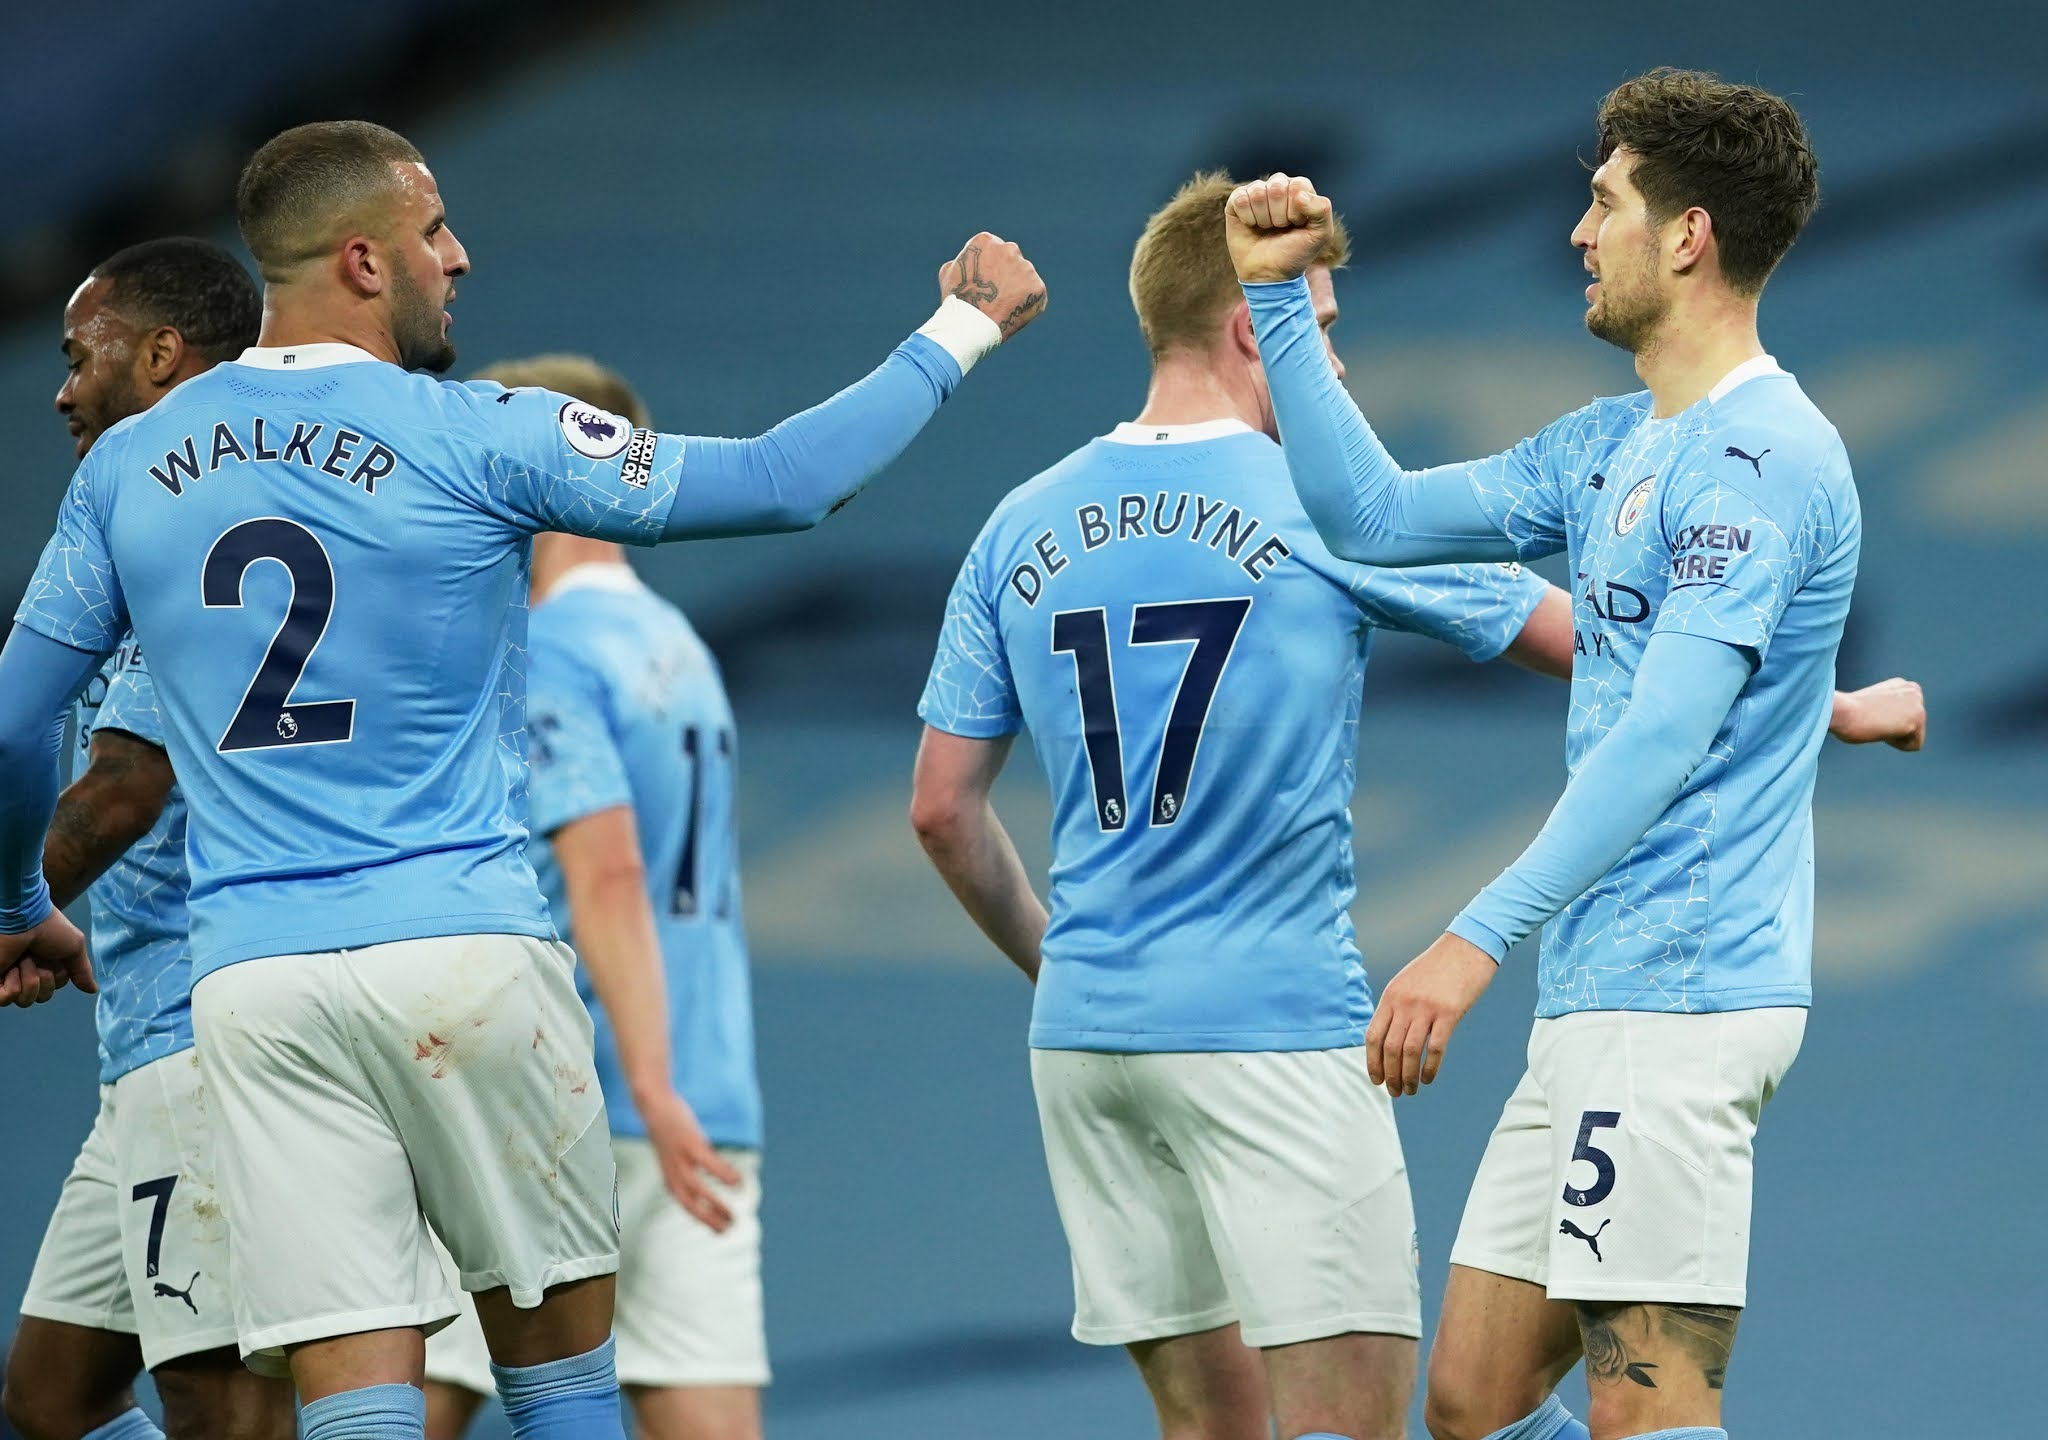 Manchester City are gaining momentum and seem to have found their rhythm